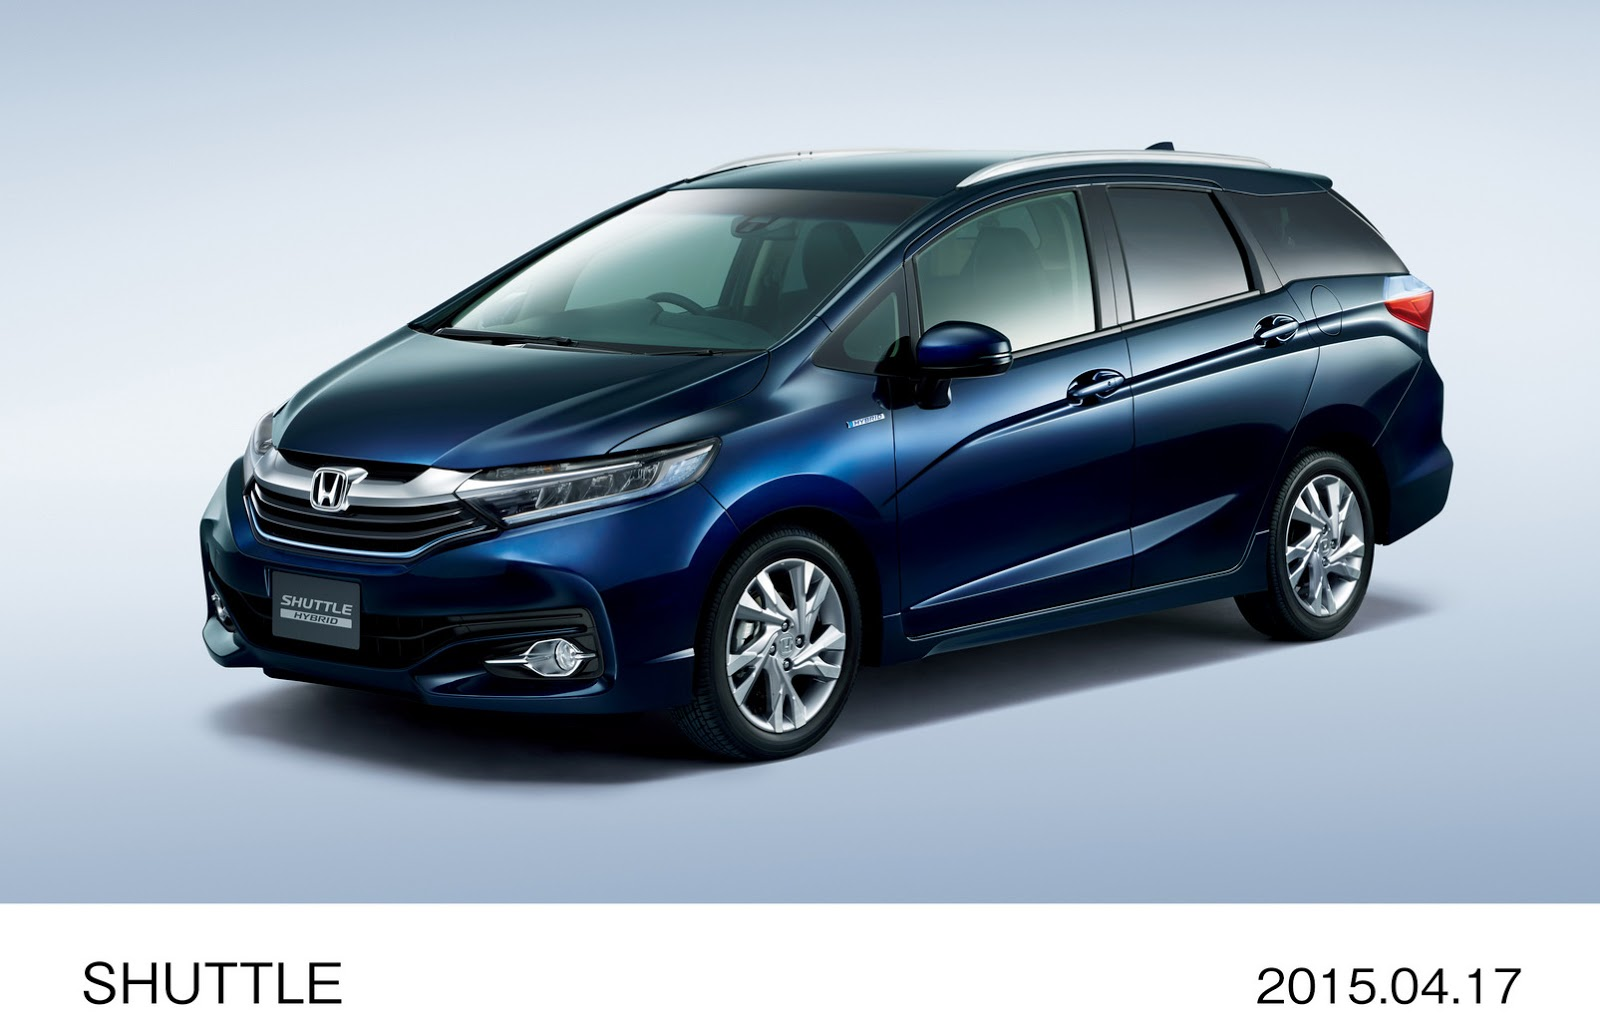 2015 Honda Shuttle Revealed In Japan The Fit S Wagon